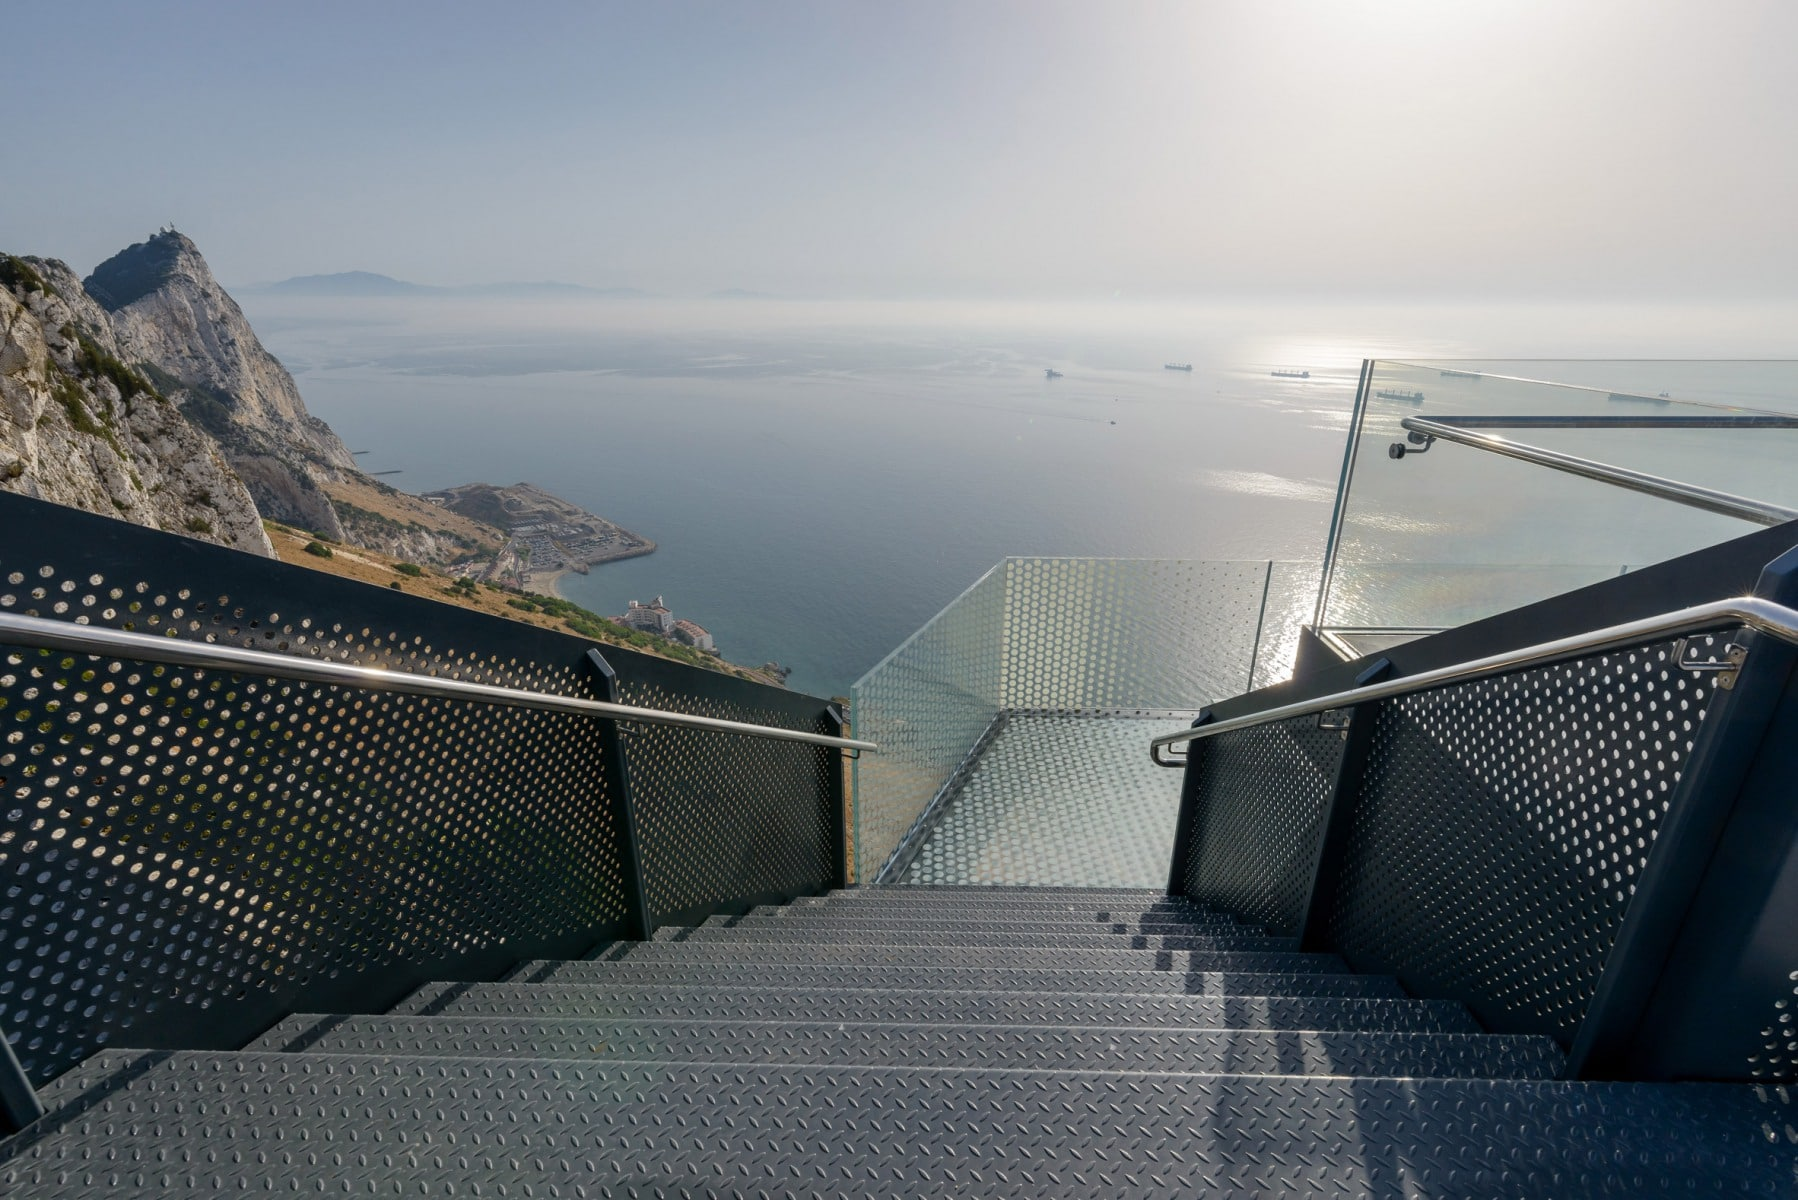 skywalk-gibraltar-5-photo-taken-for-bovis-koala-jv-by-meteogibs-photographer-stephen-ball_41367548500_o